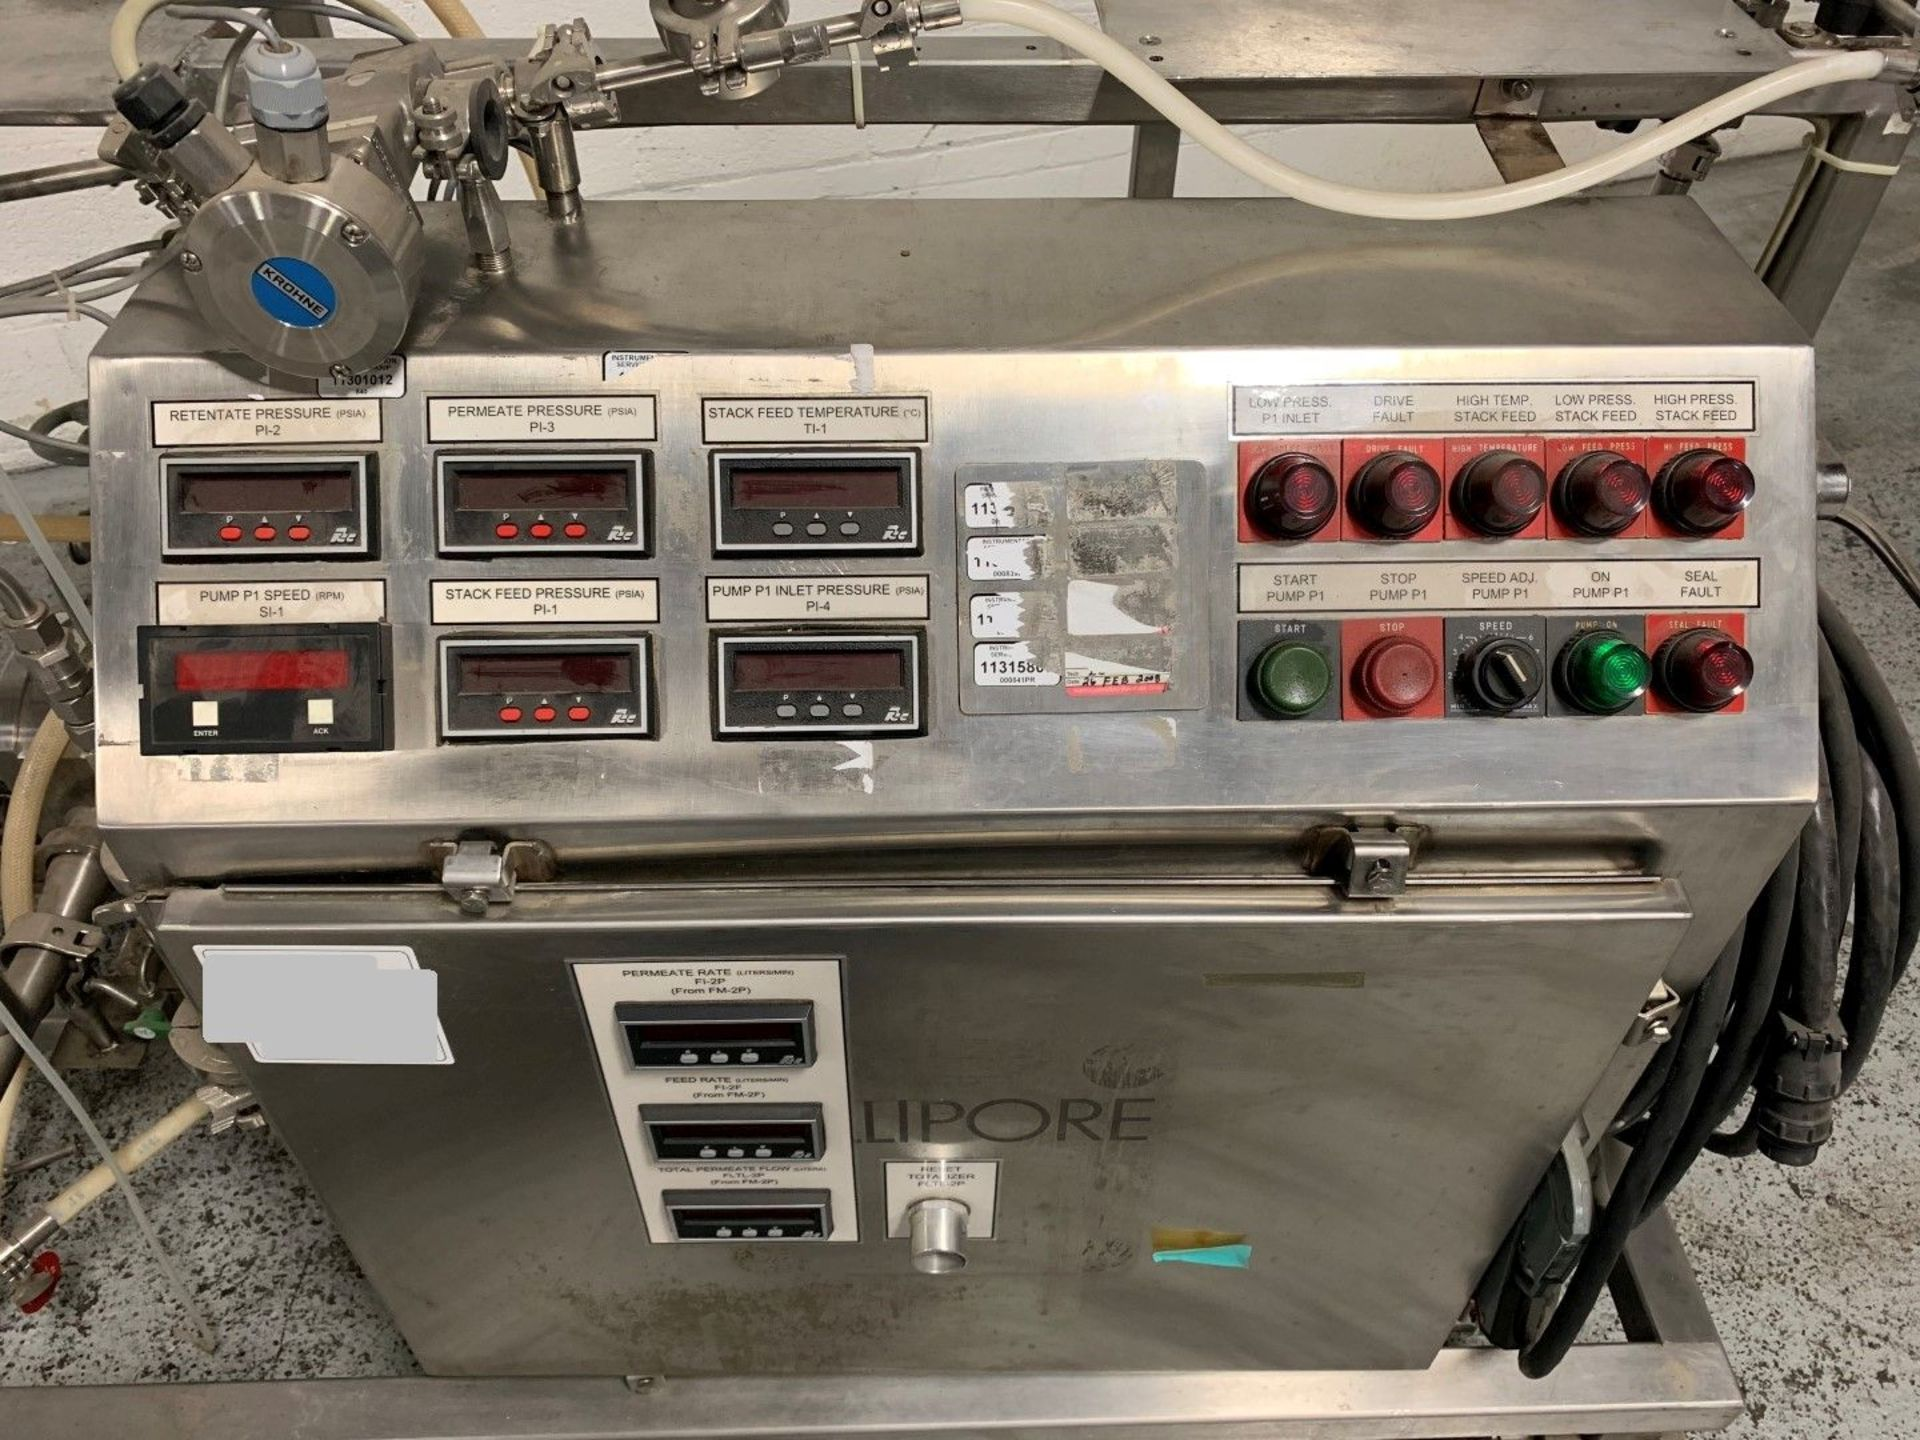 Lot 2 - Millipore chromatography pump skid with 5 HP Pump